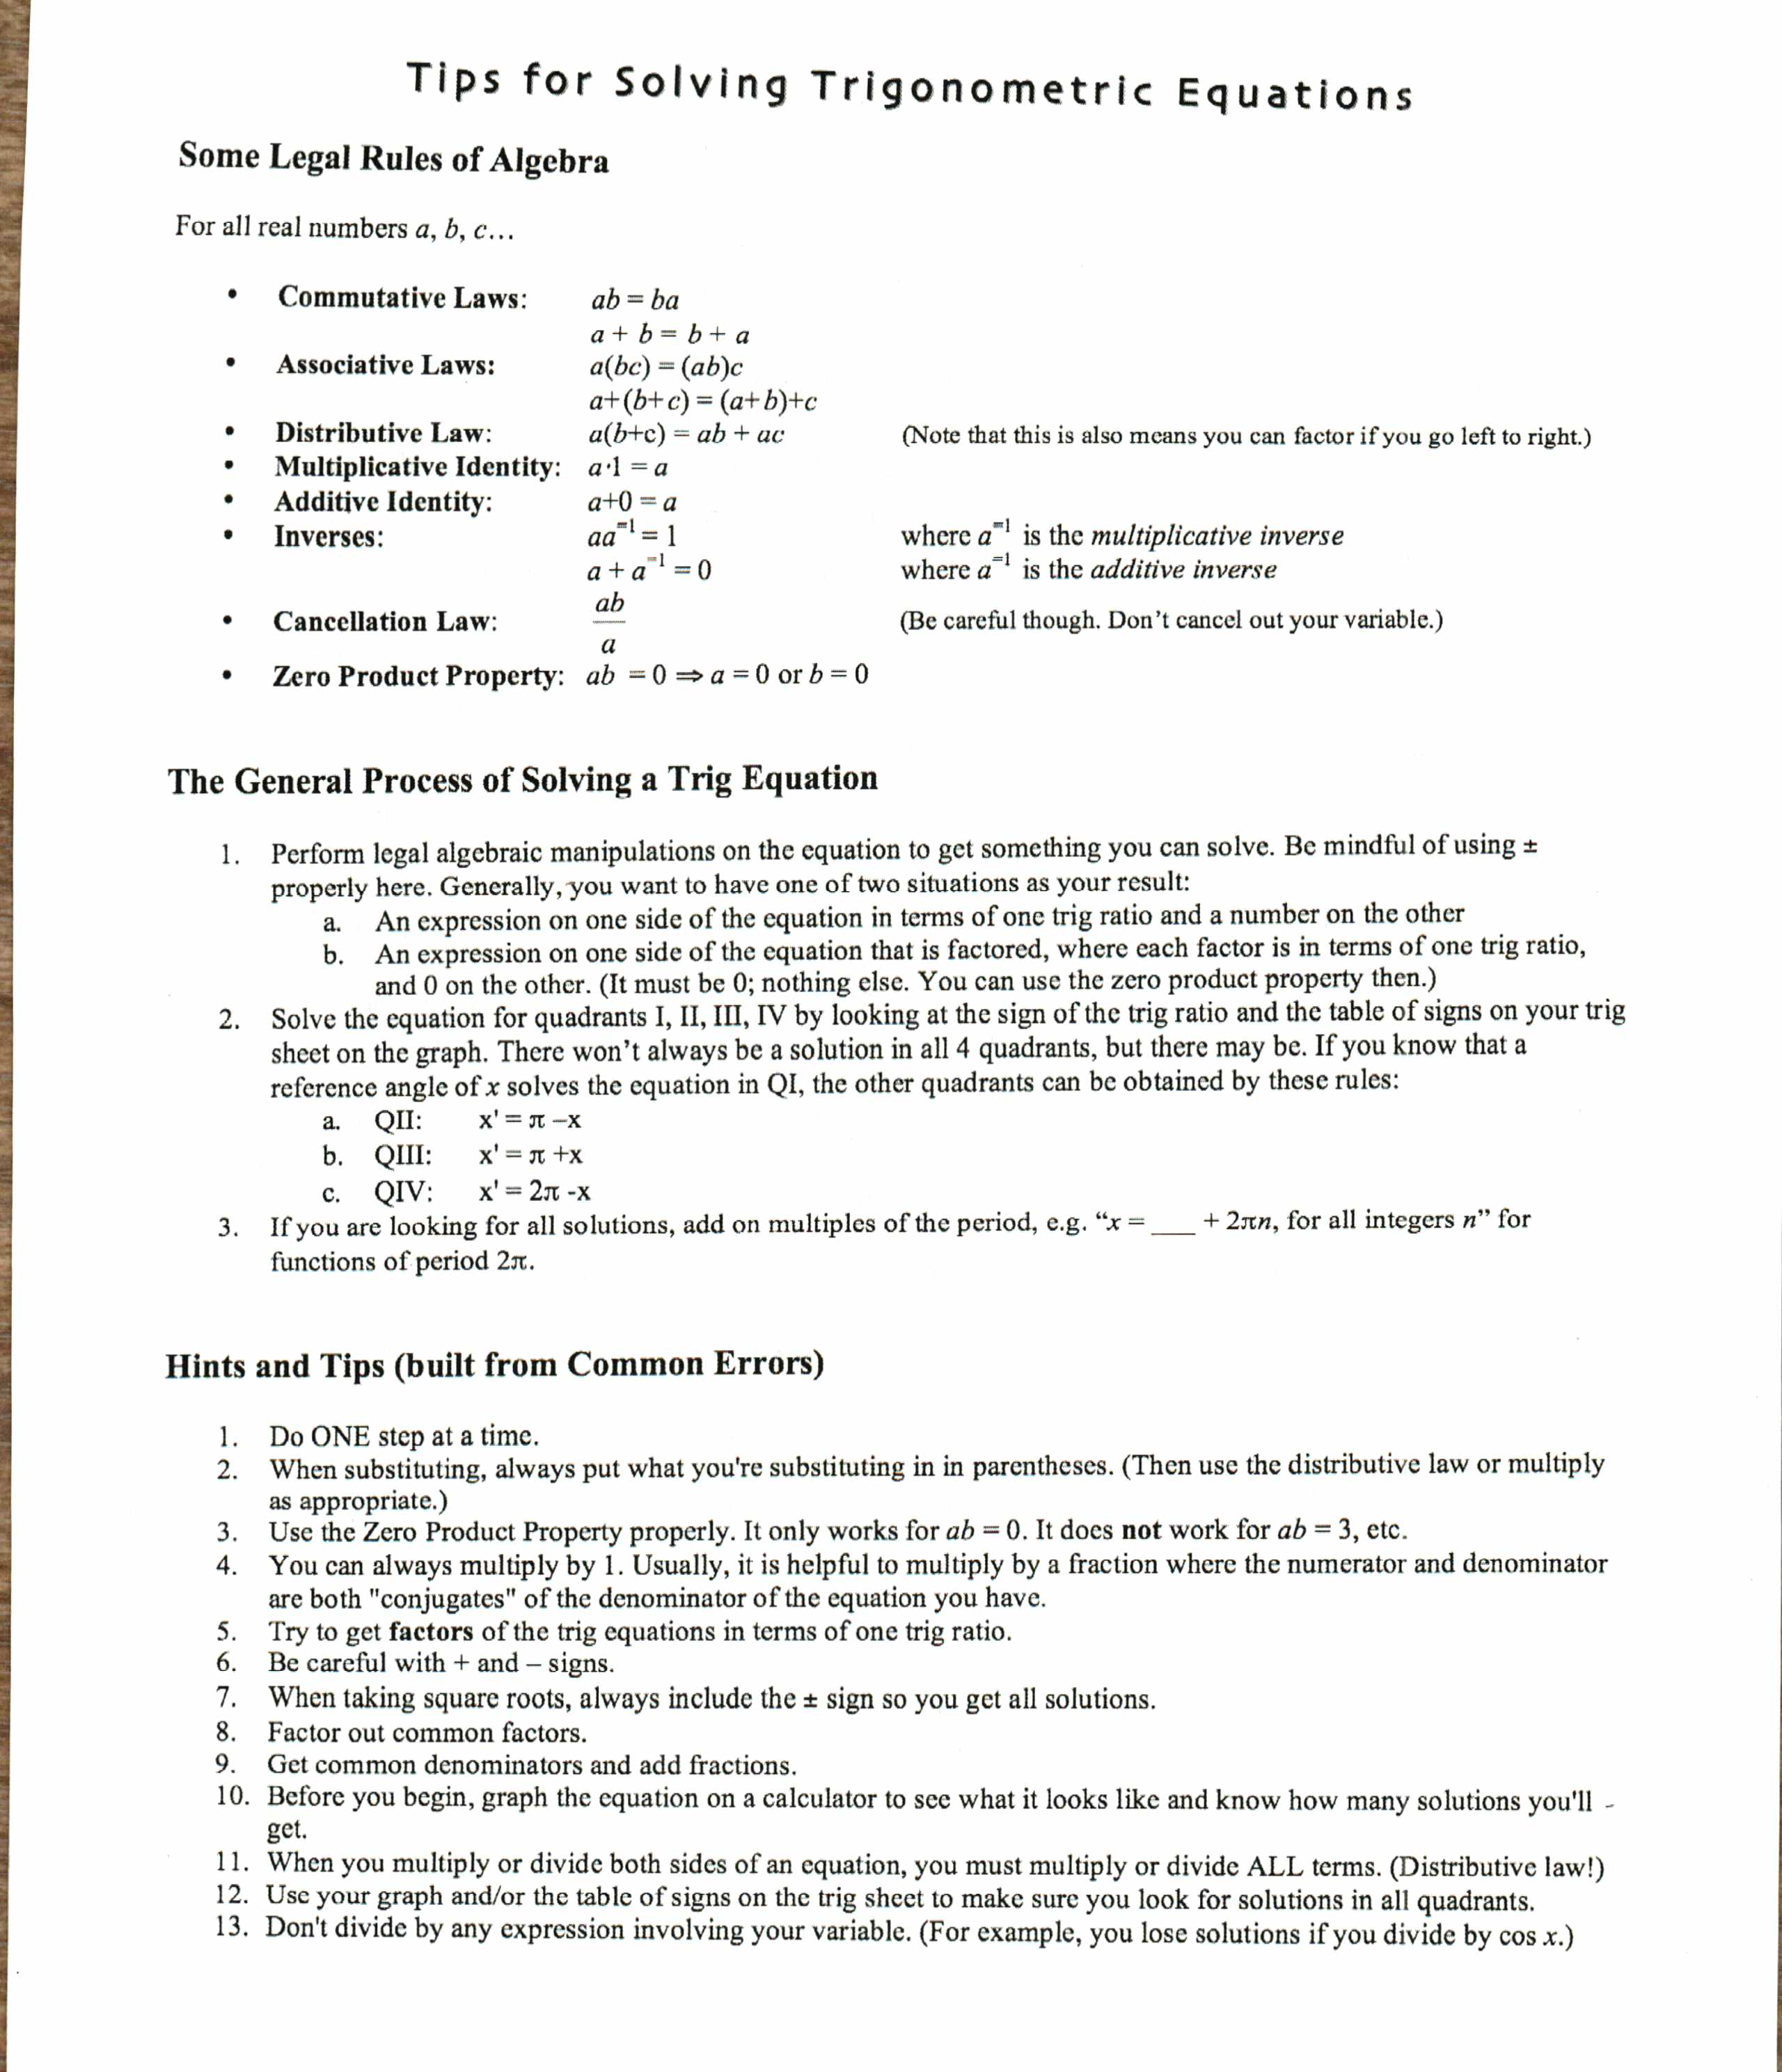 Uncategorized Solving Trig Equations Worksheet 614 c block for solving trig equationstips